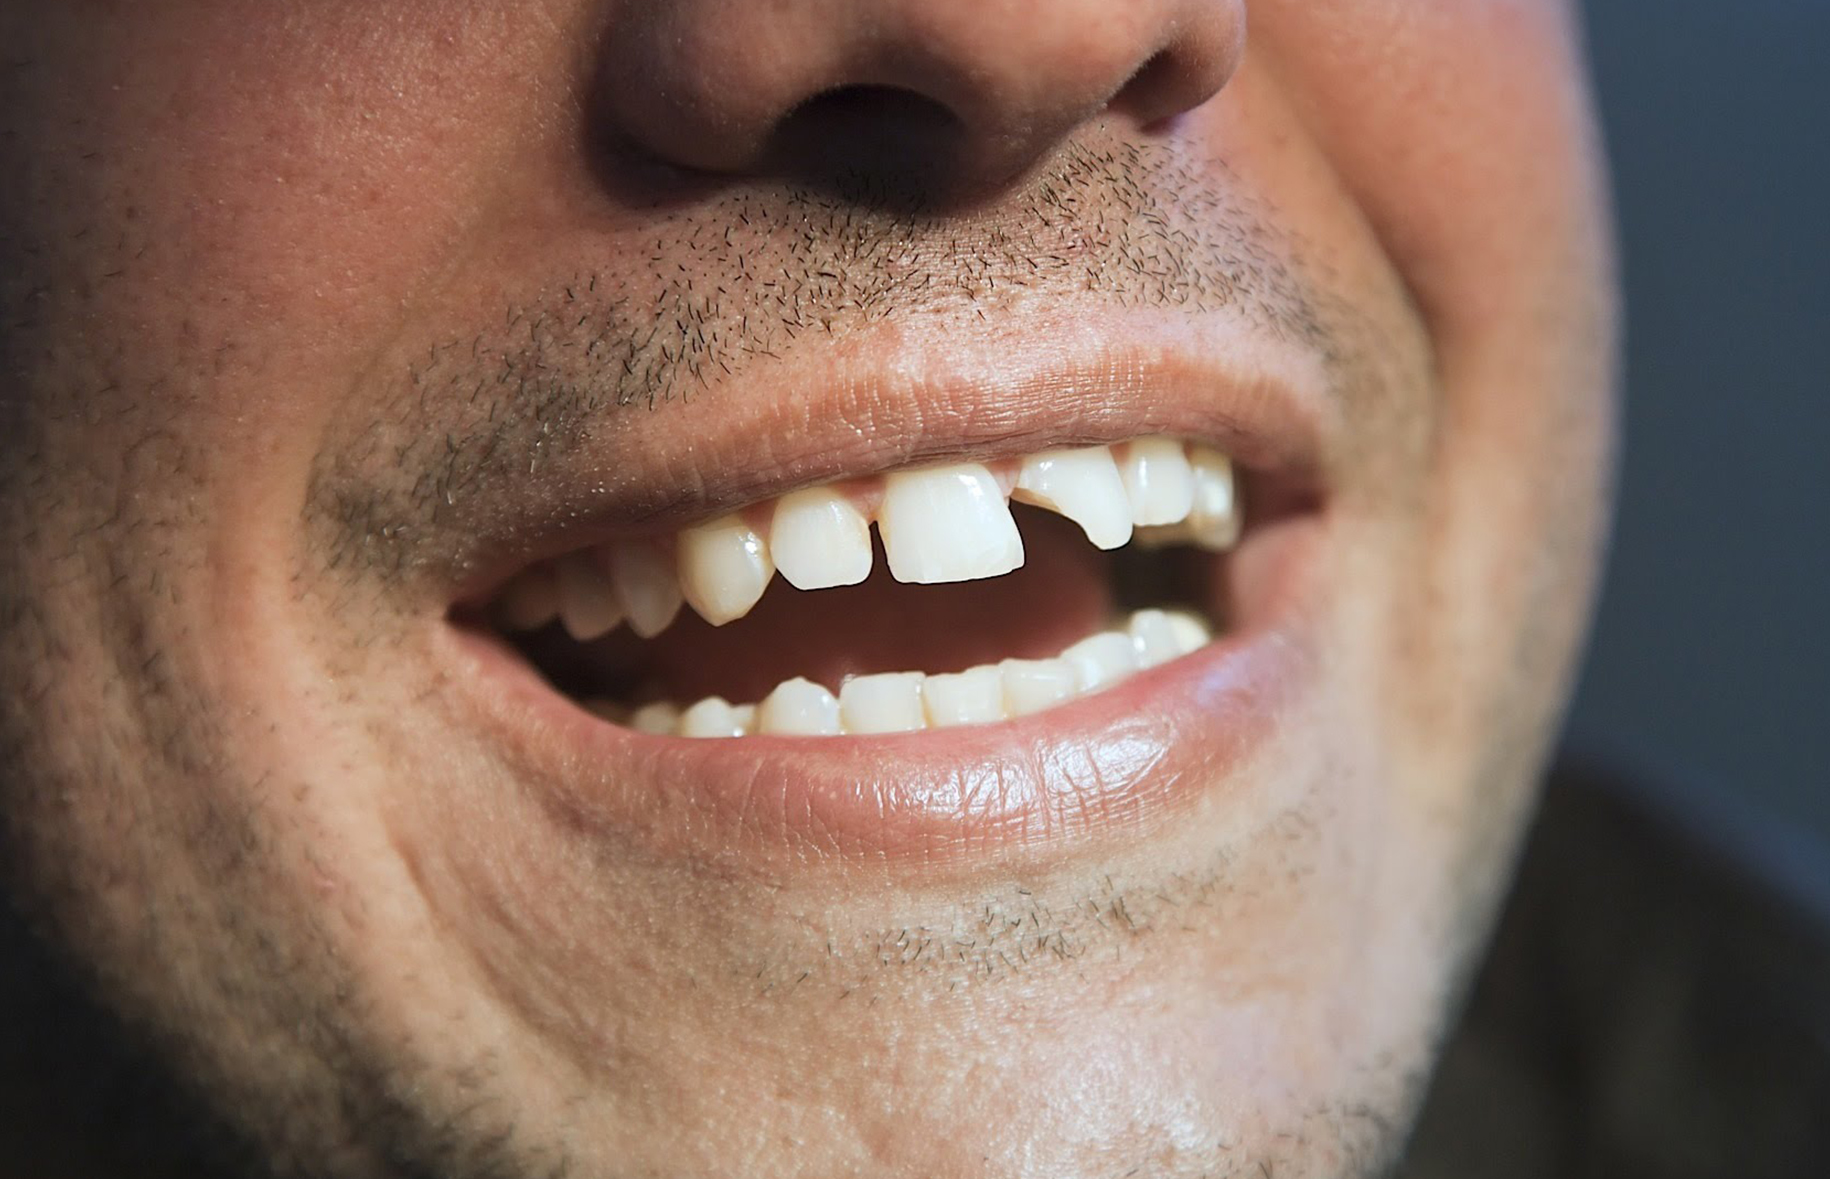 If I still have all my teeth, can I get mini implants?